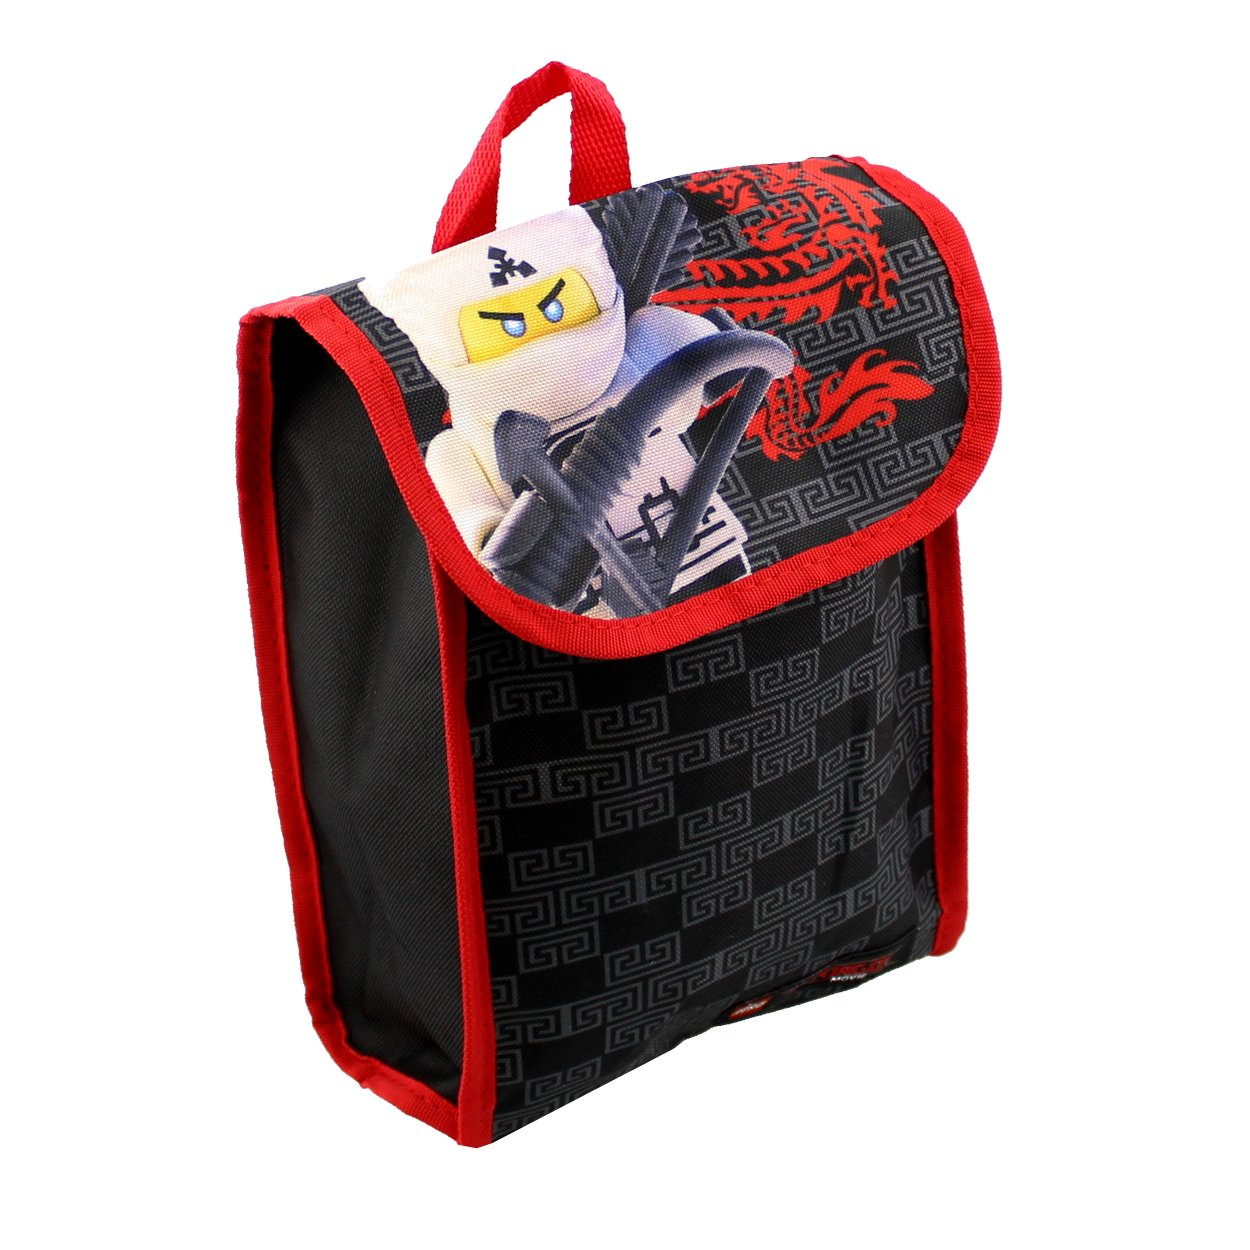 Pencil Case and Carabiner Clip LEGO LNCF519ZA Ninjago 16 Backpack 5pc Set with Snack Tote Wallet Black